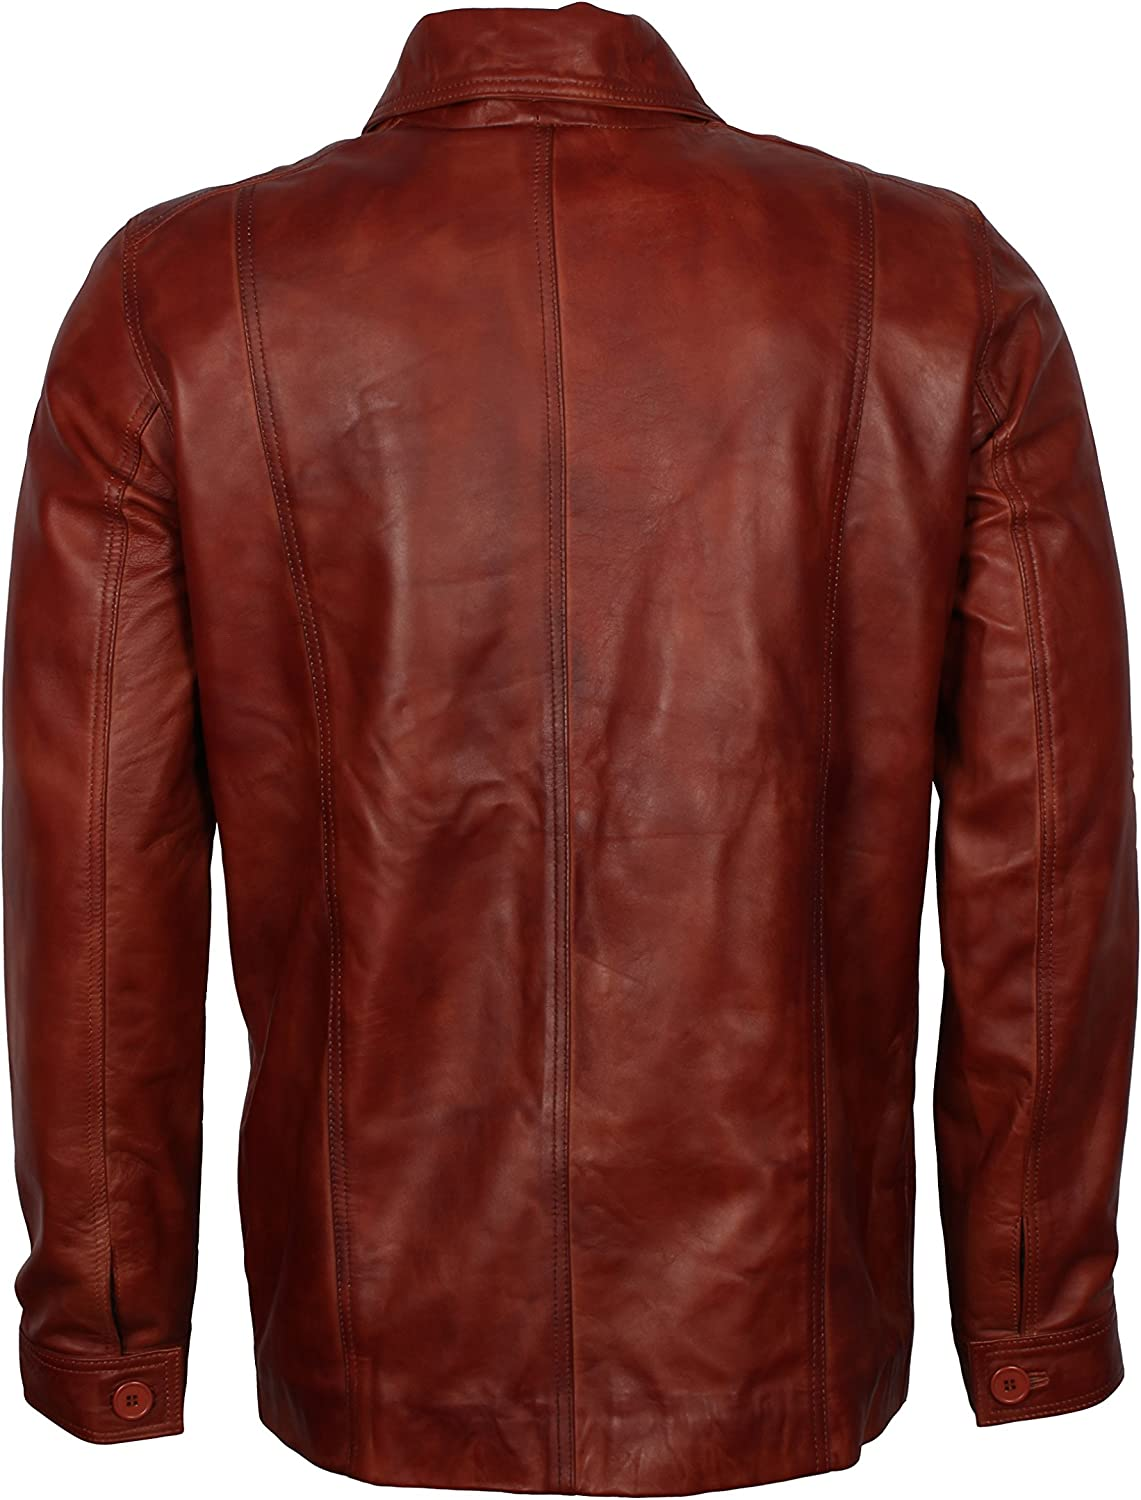 LeatherArtistics Ultimate Collection Antique Biker Jacket In Real Brown Waxed Leather Men